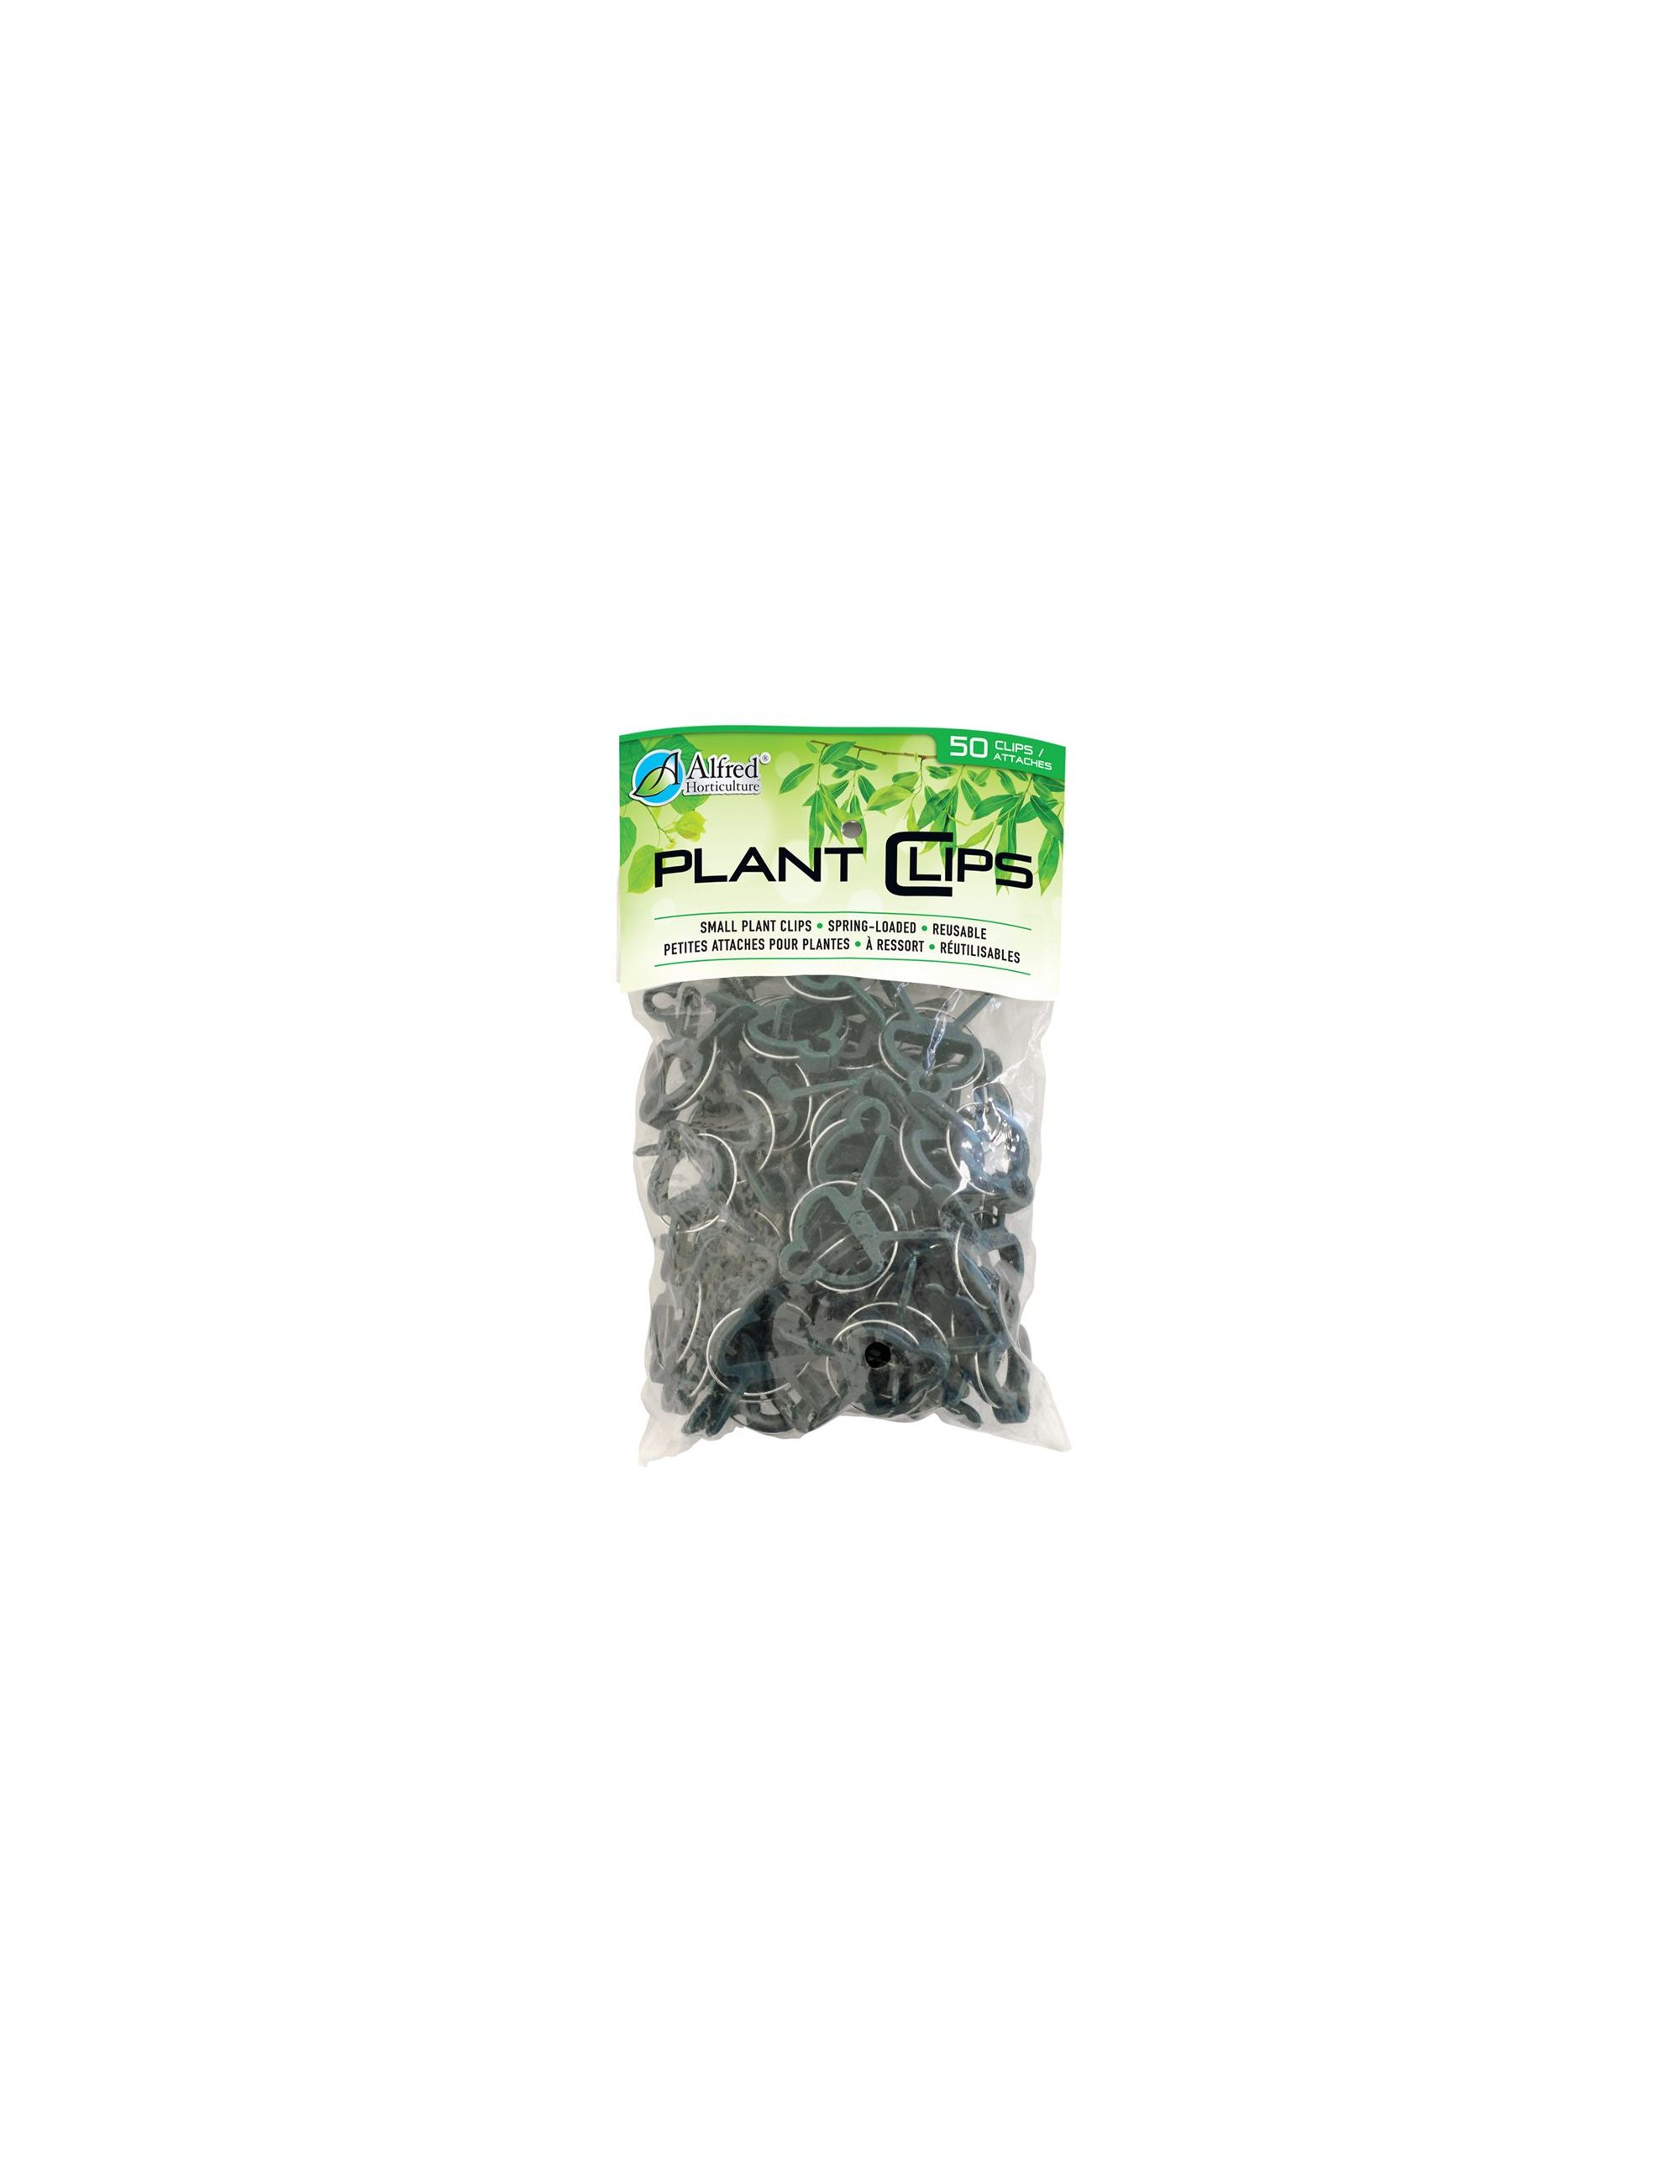 PLANT CLIPS SPRING LOADED SMALL 50 / PK